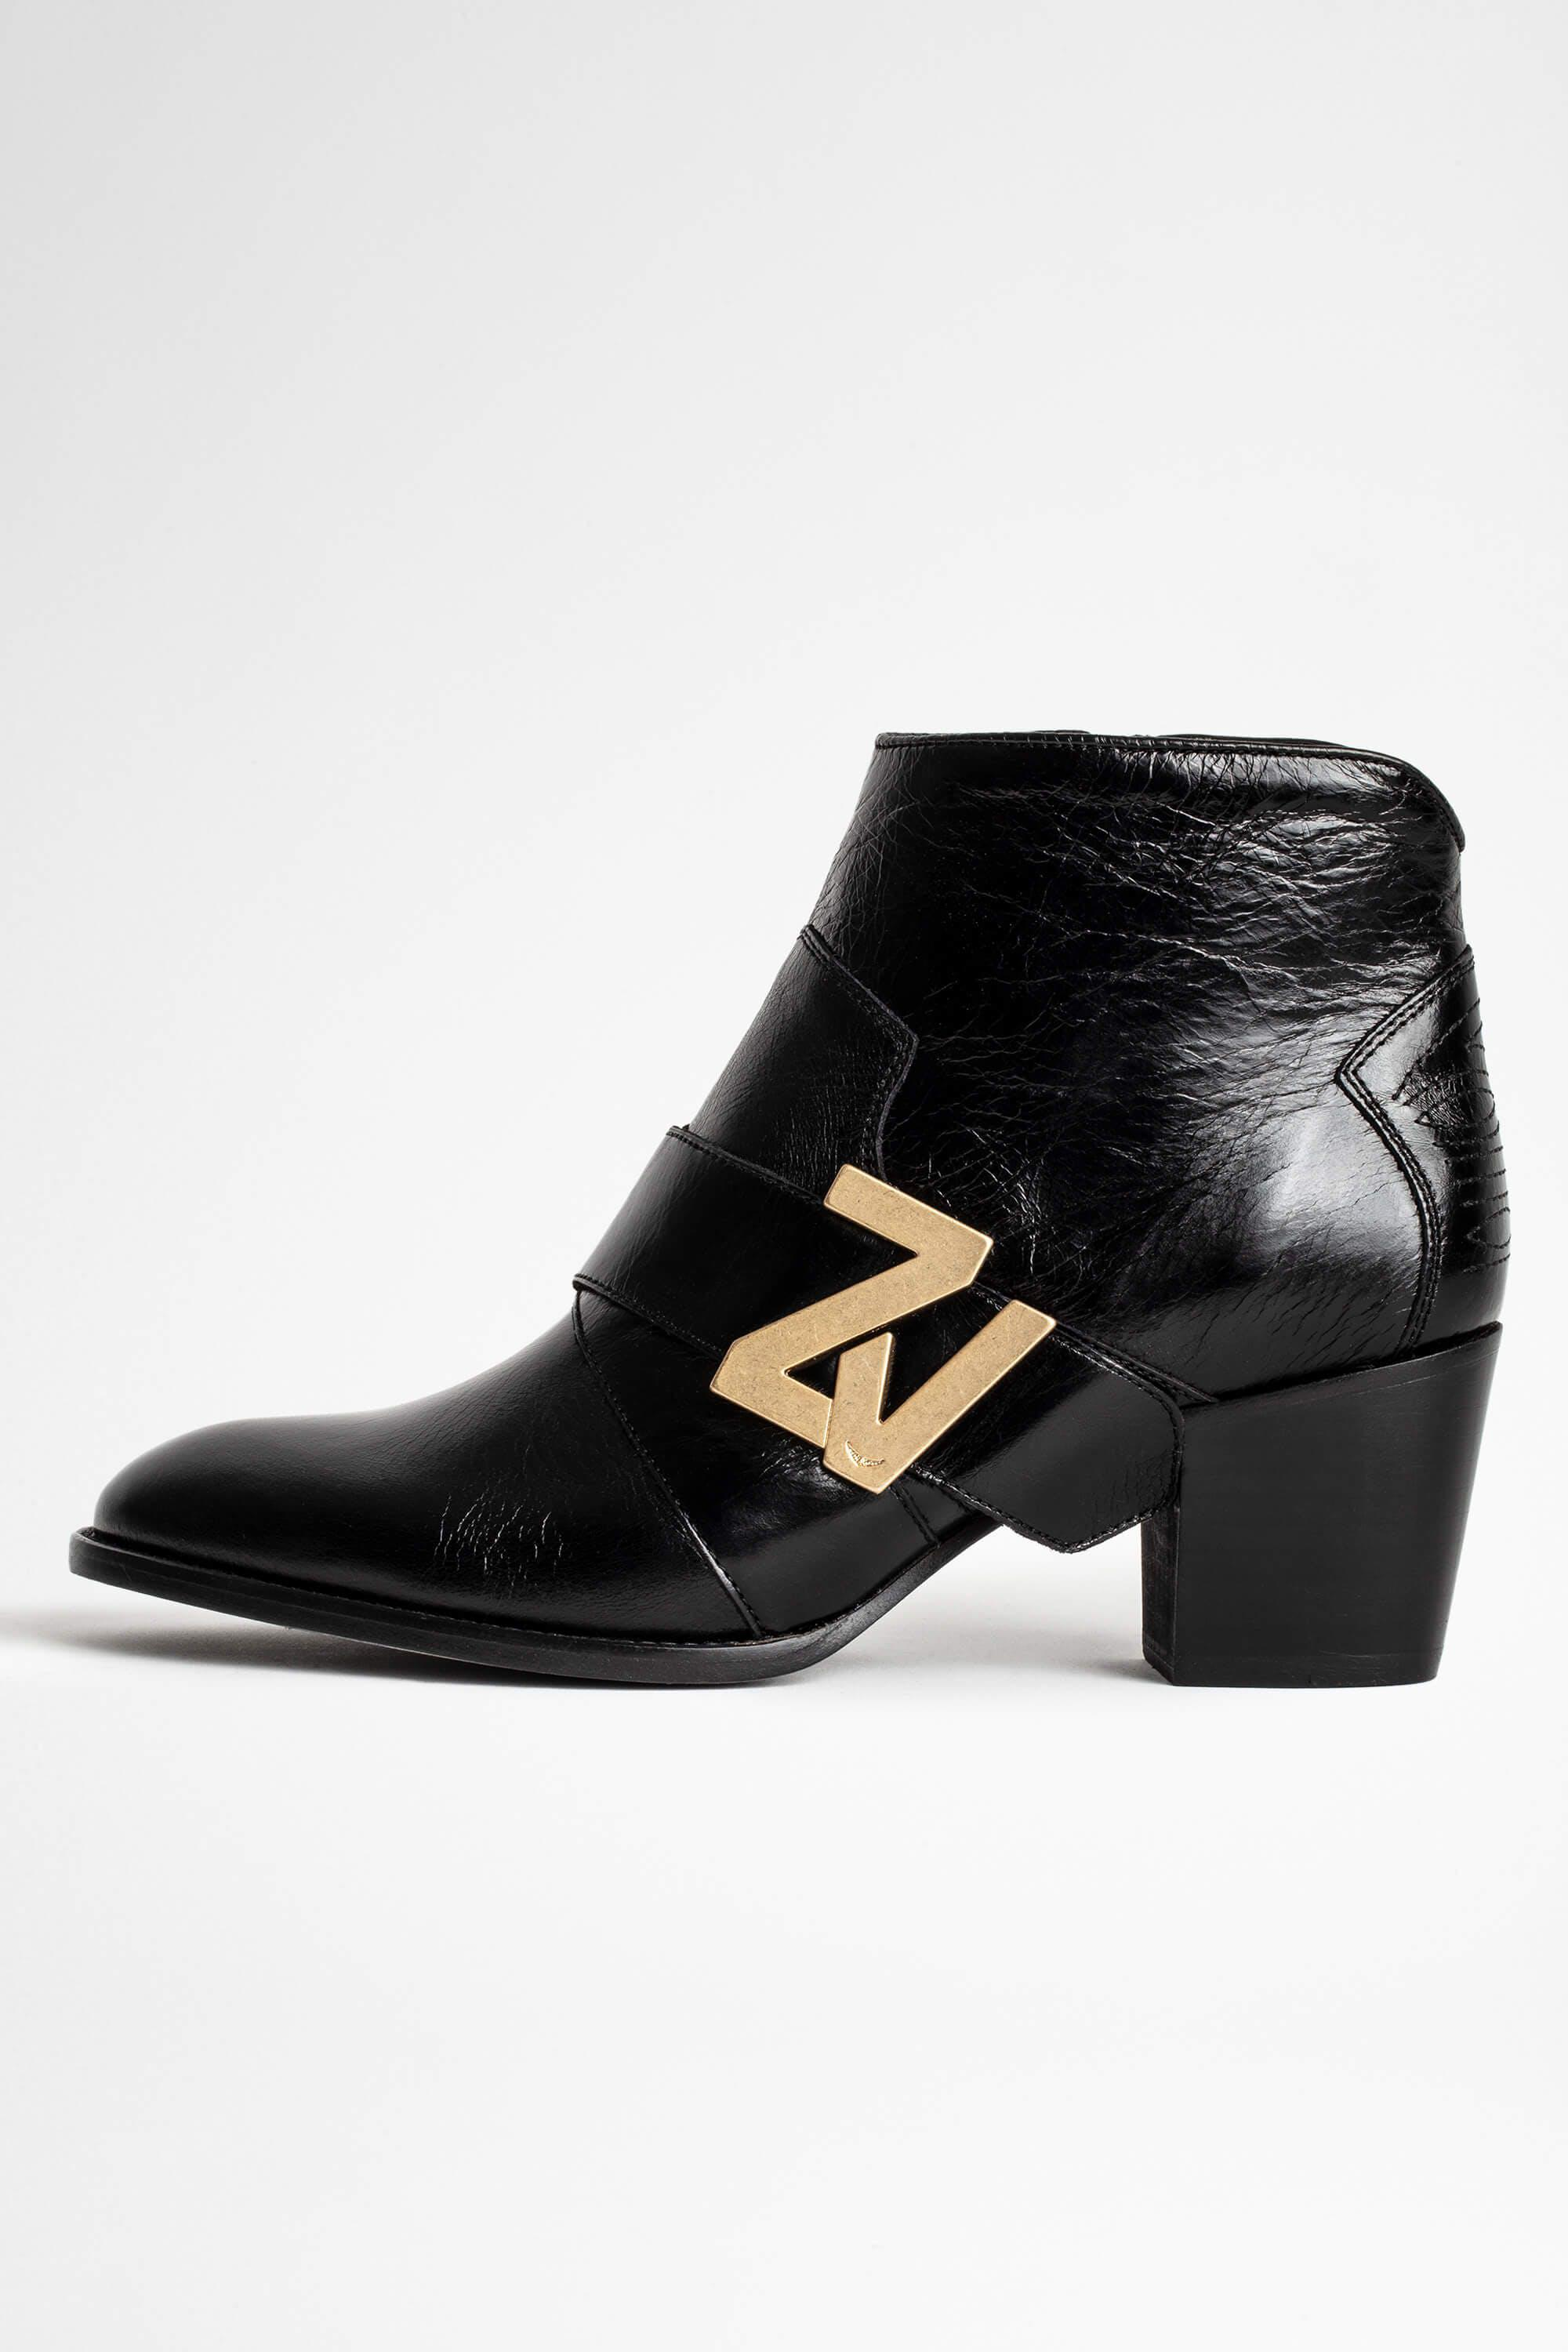 Molly ZV Initiale Vintage Patent Boot